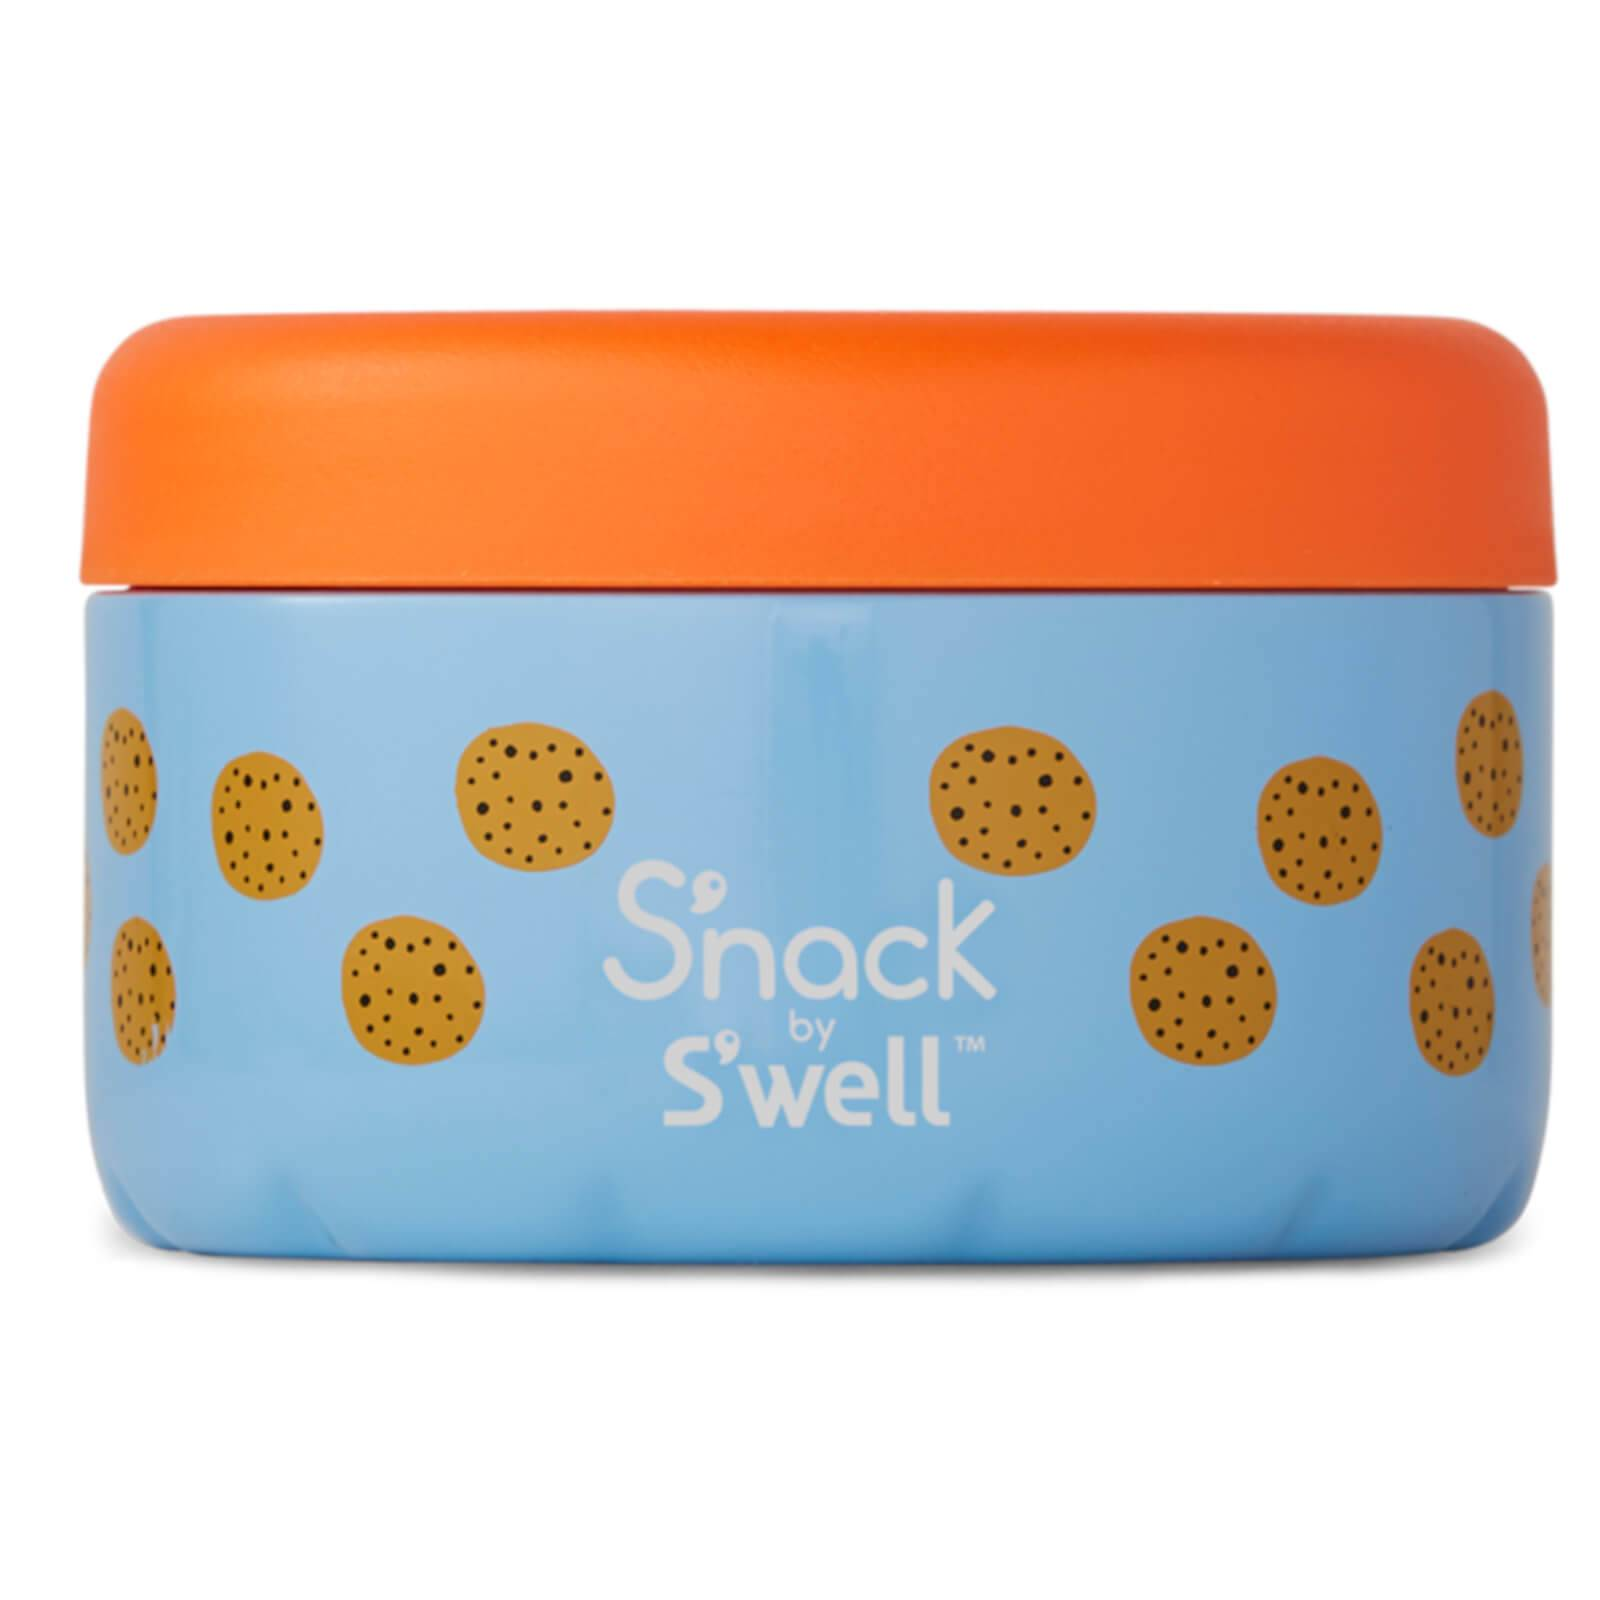 S'ip by S'well S'nack by S'well Cookies Food Container - 10oz